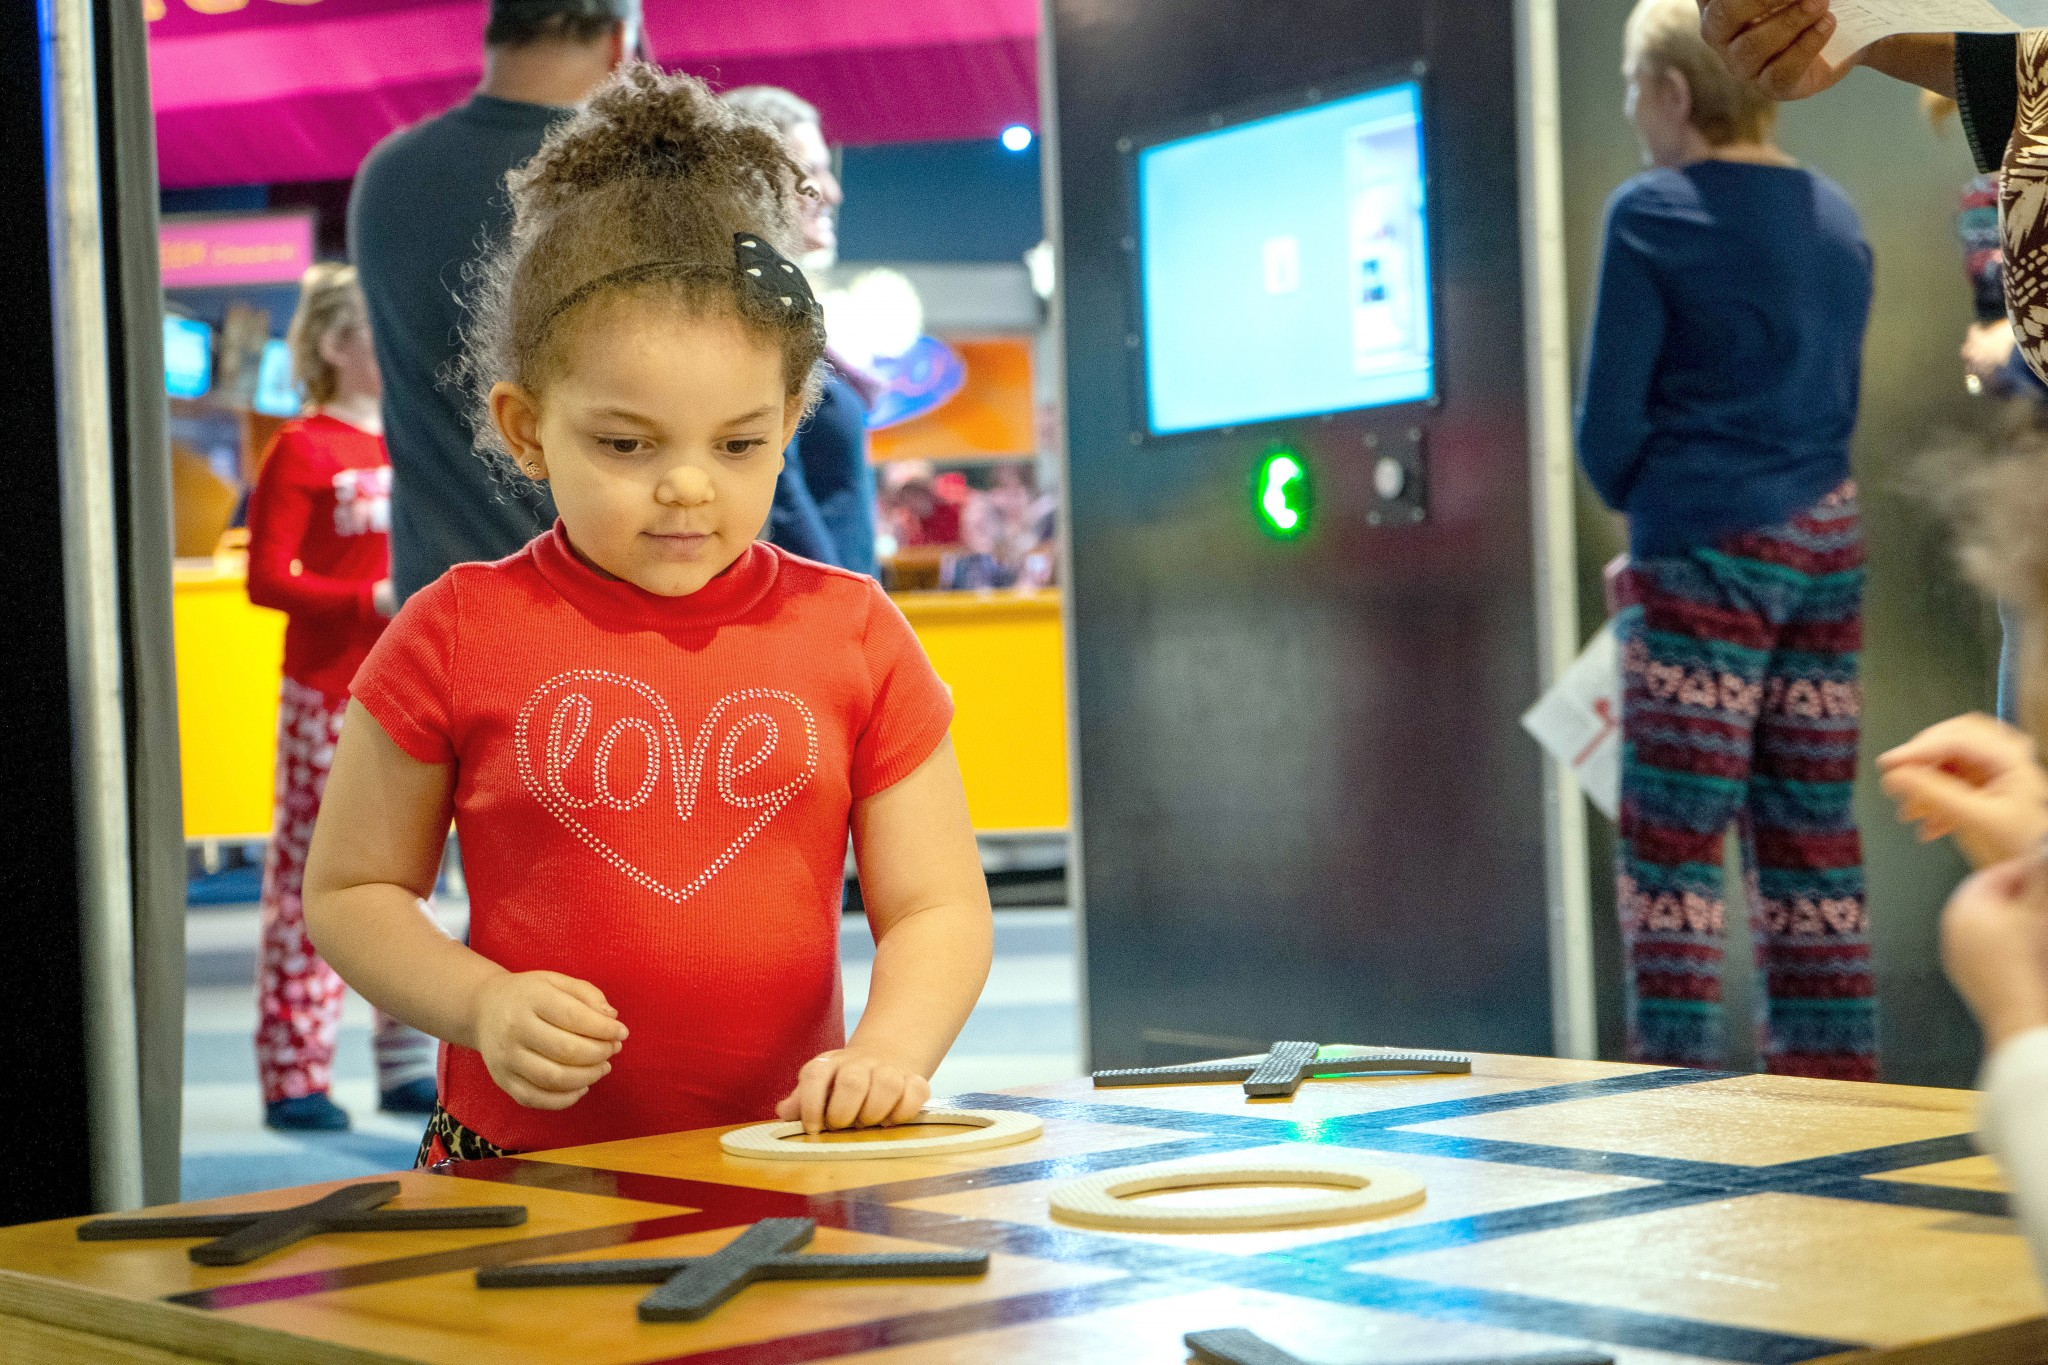 Fun is in the forecast Jan. 18-20 as Imagination Station hosts a Snowed-In Pajama Party. (Photo courtesy of Imagination Station)